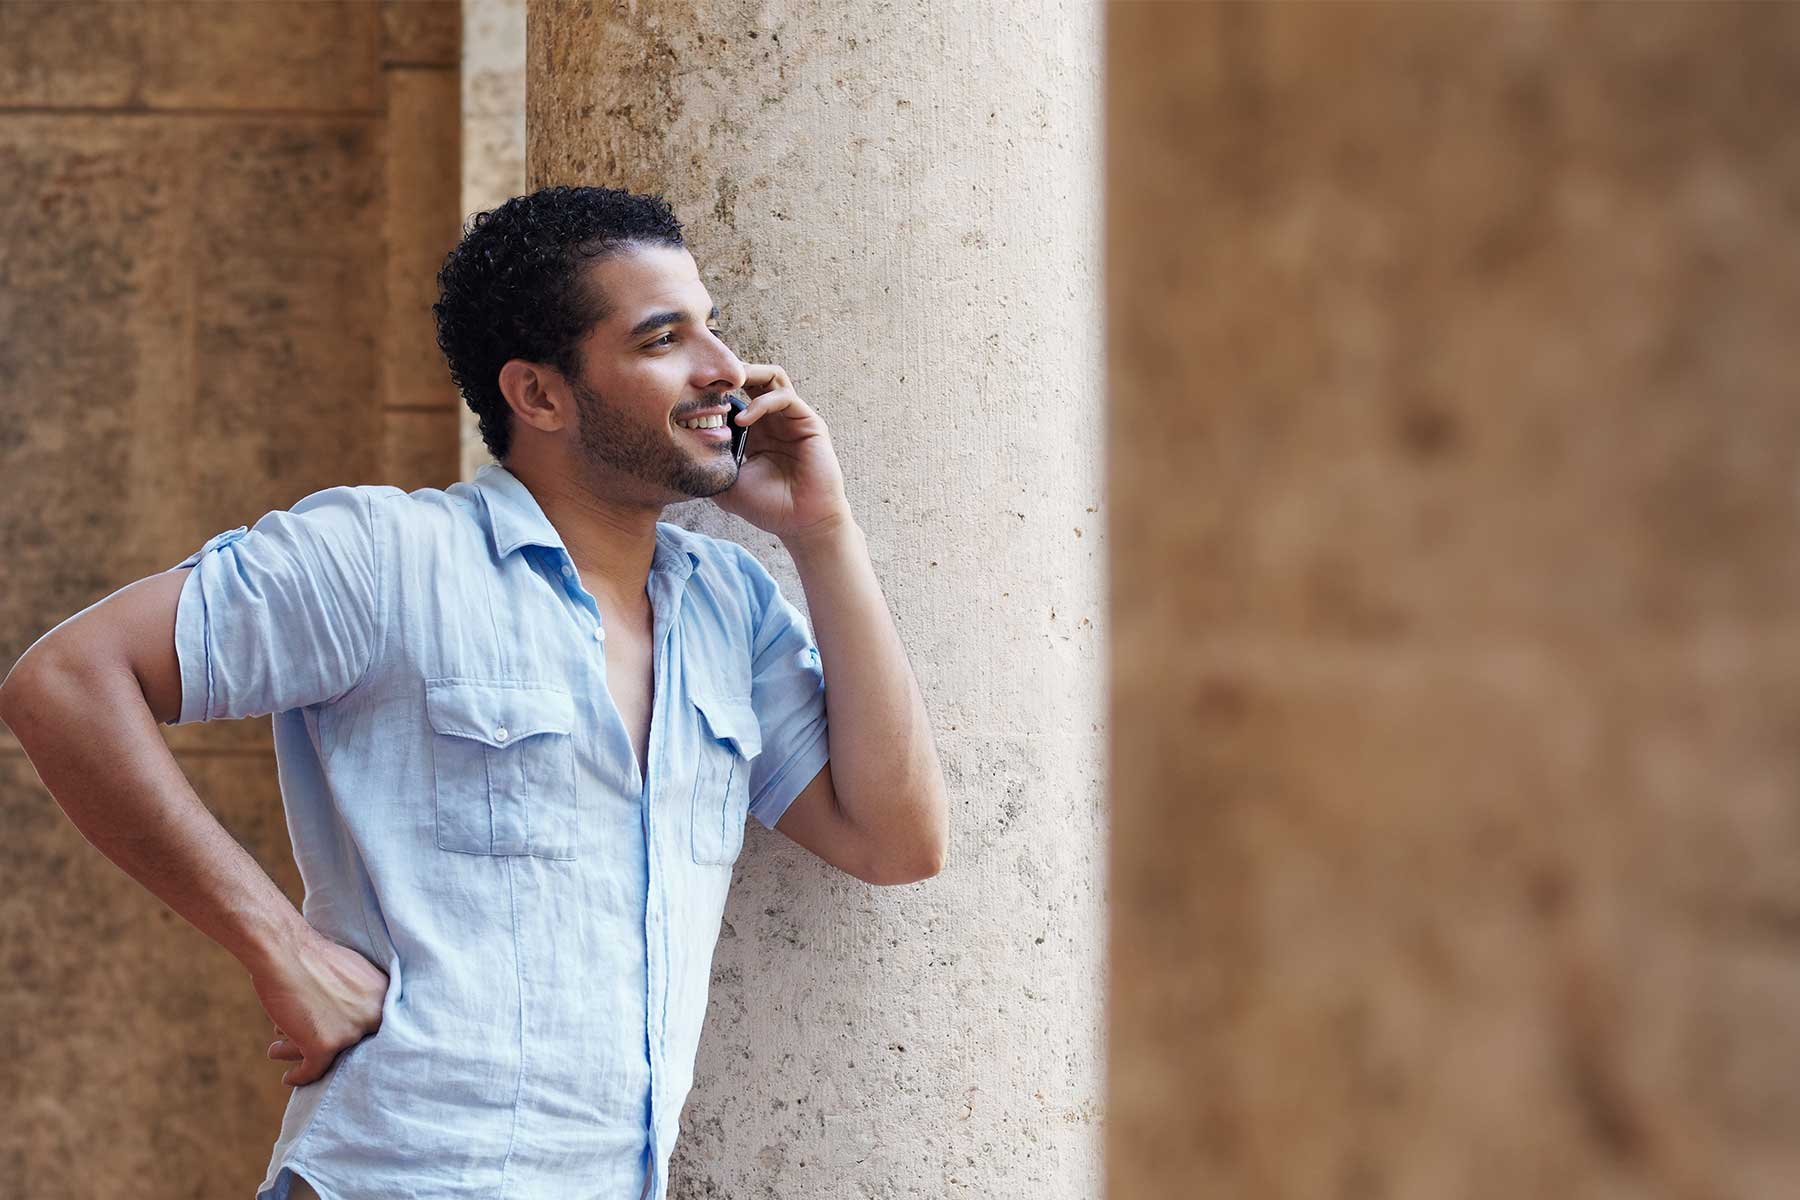 Man on phone talking with friends